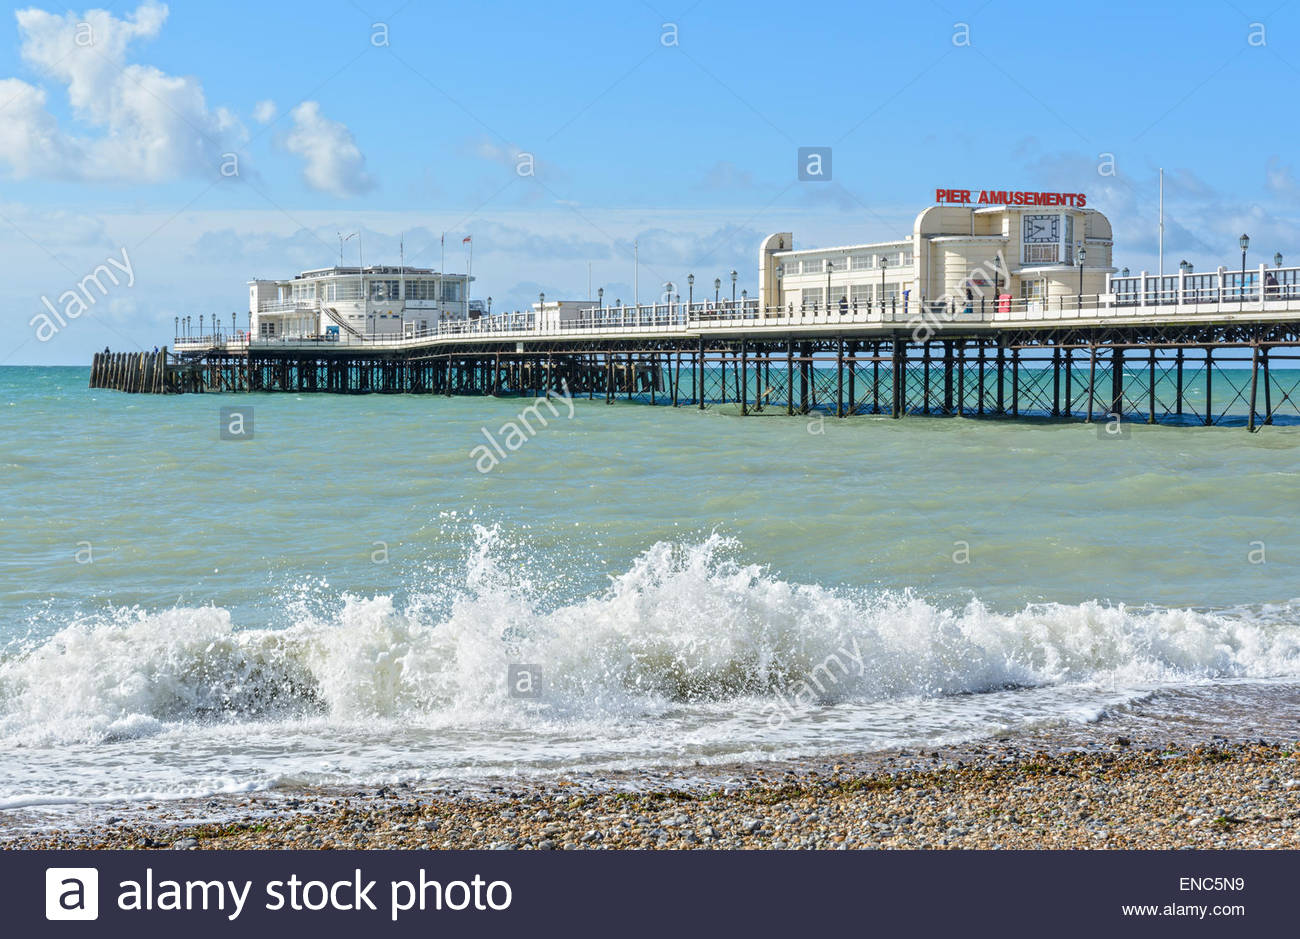 Worthing Pier in Worthing, West Sussex, England, UK. - Stock Image